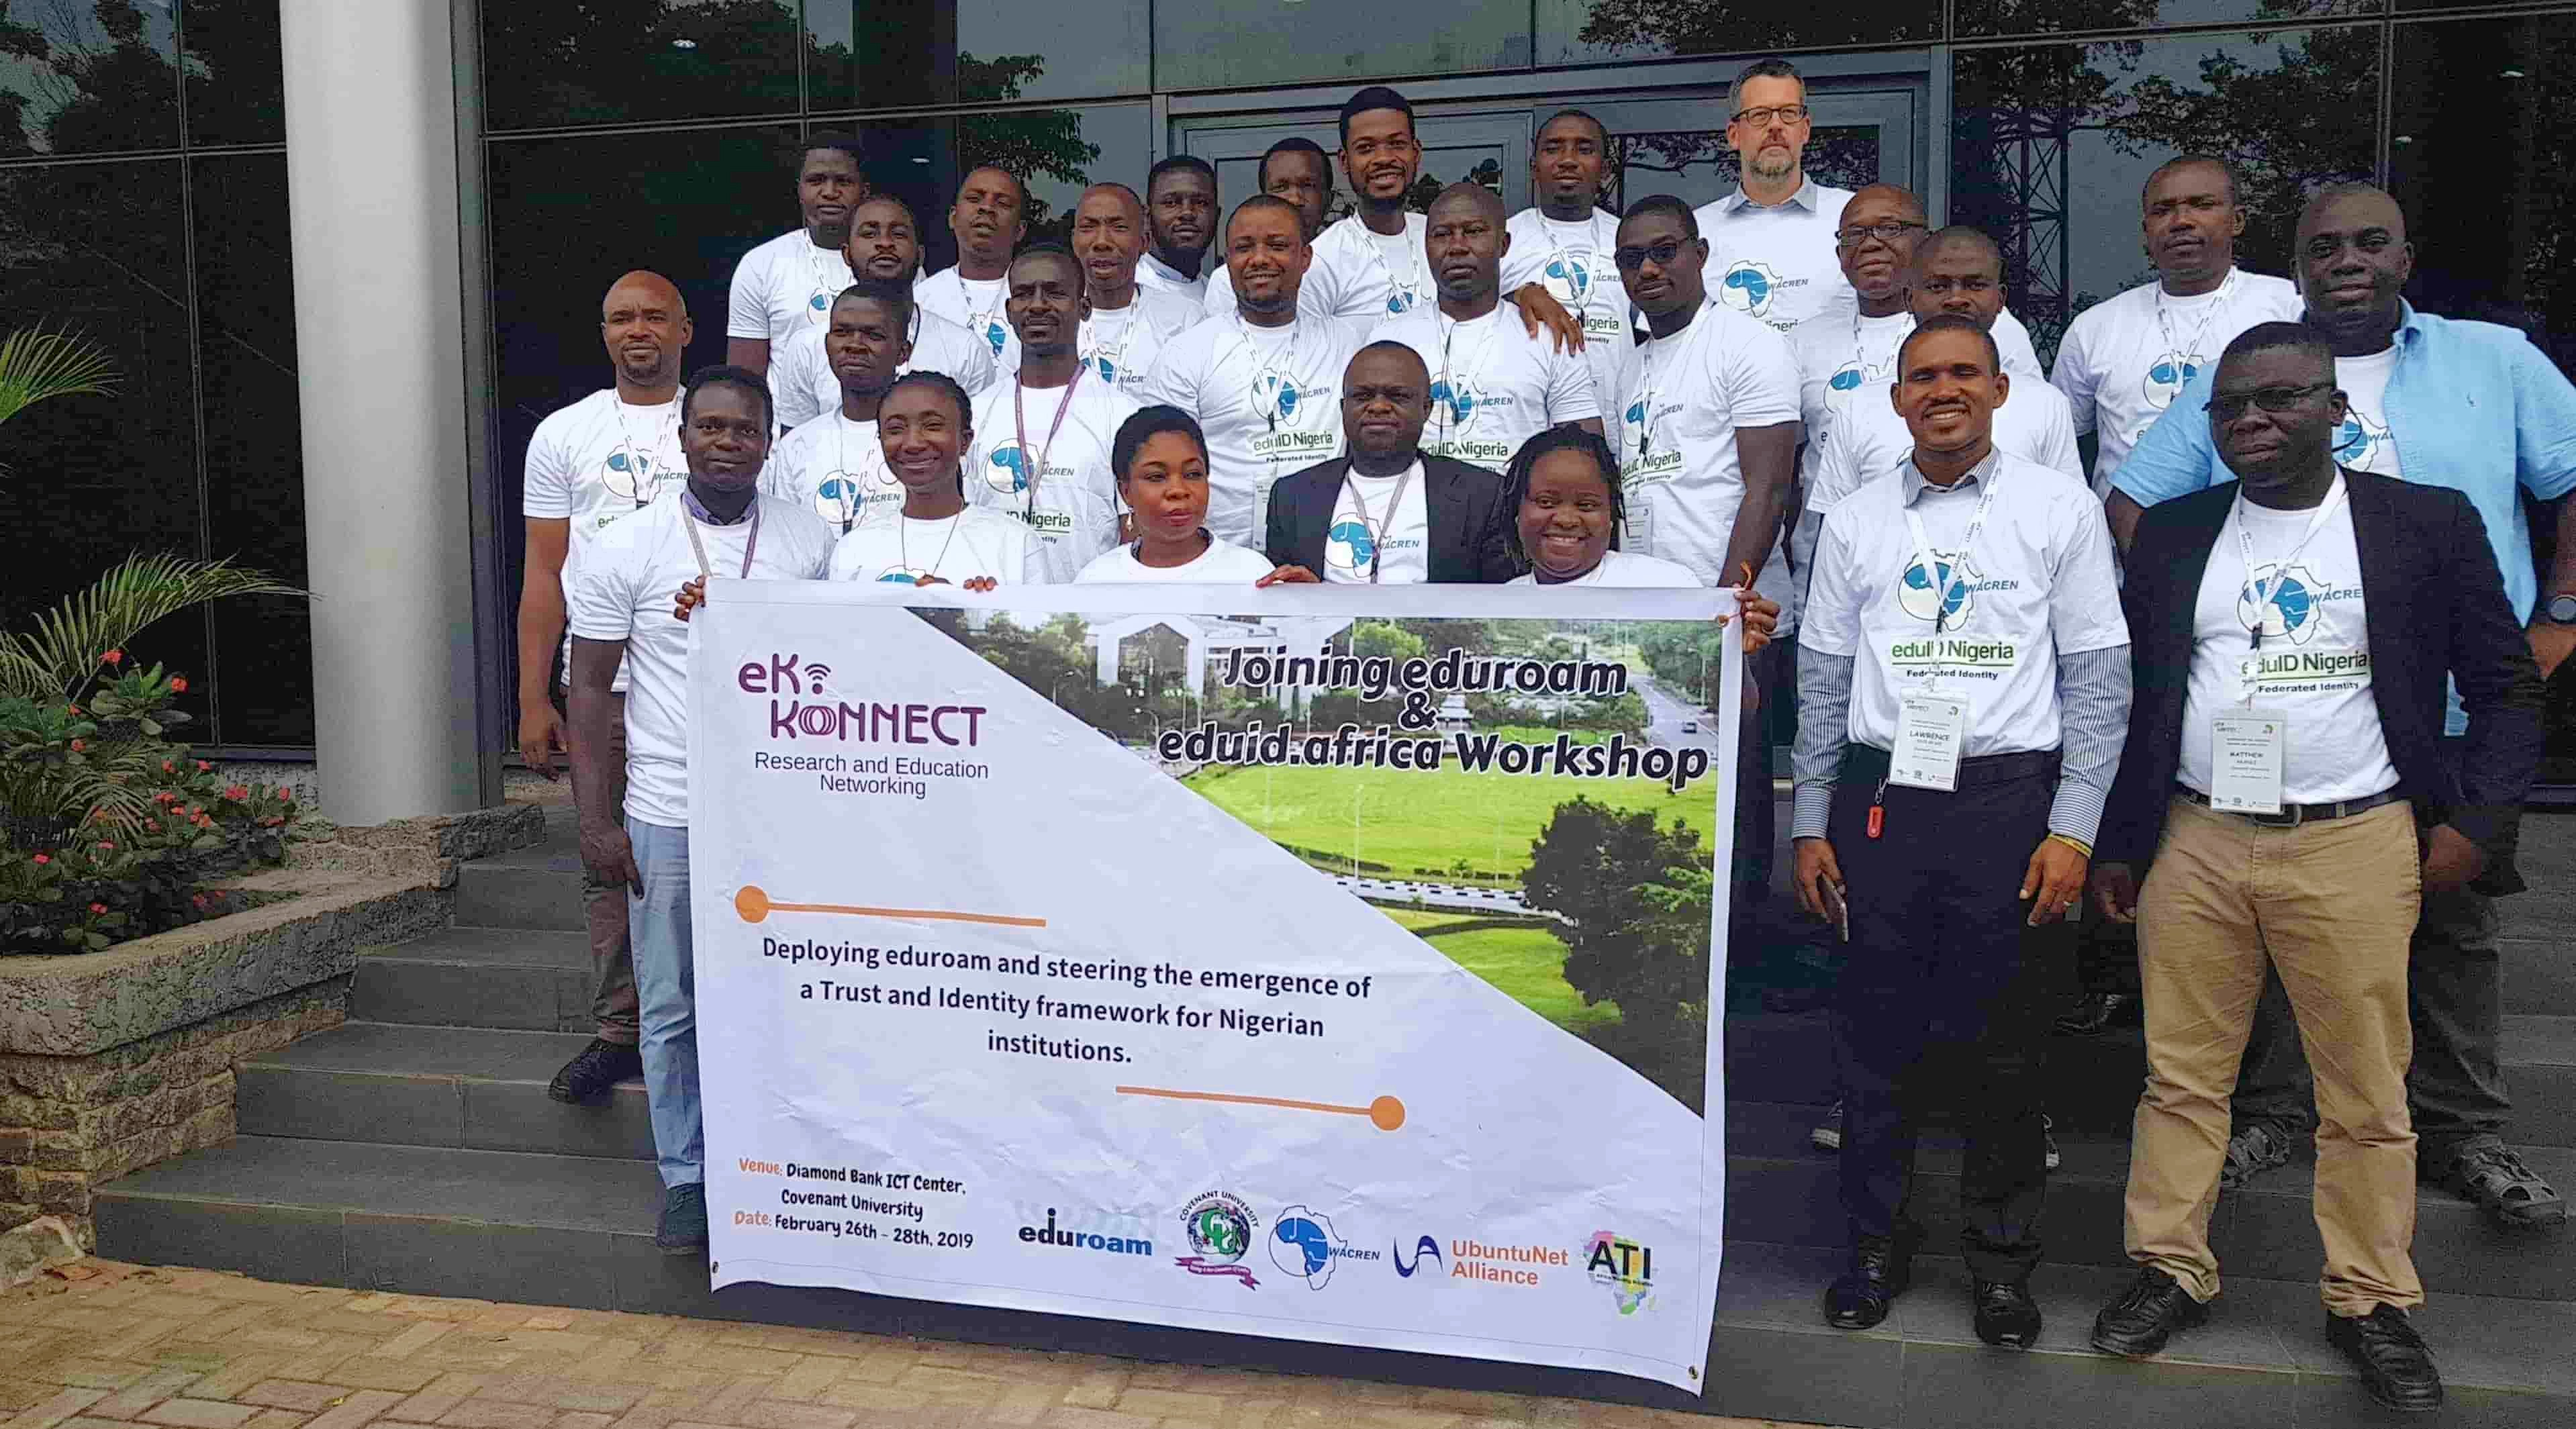 Joining eduid and eduroam workshop concludes – Institutions in Nigeria Commence eduroam deployment